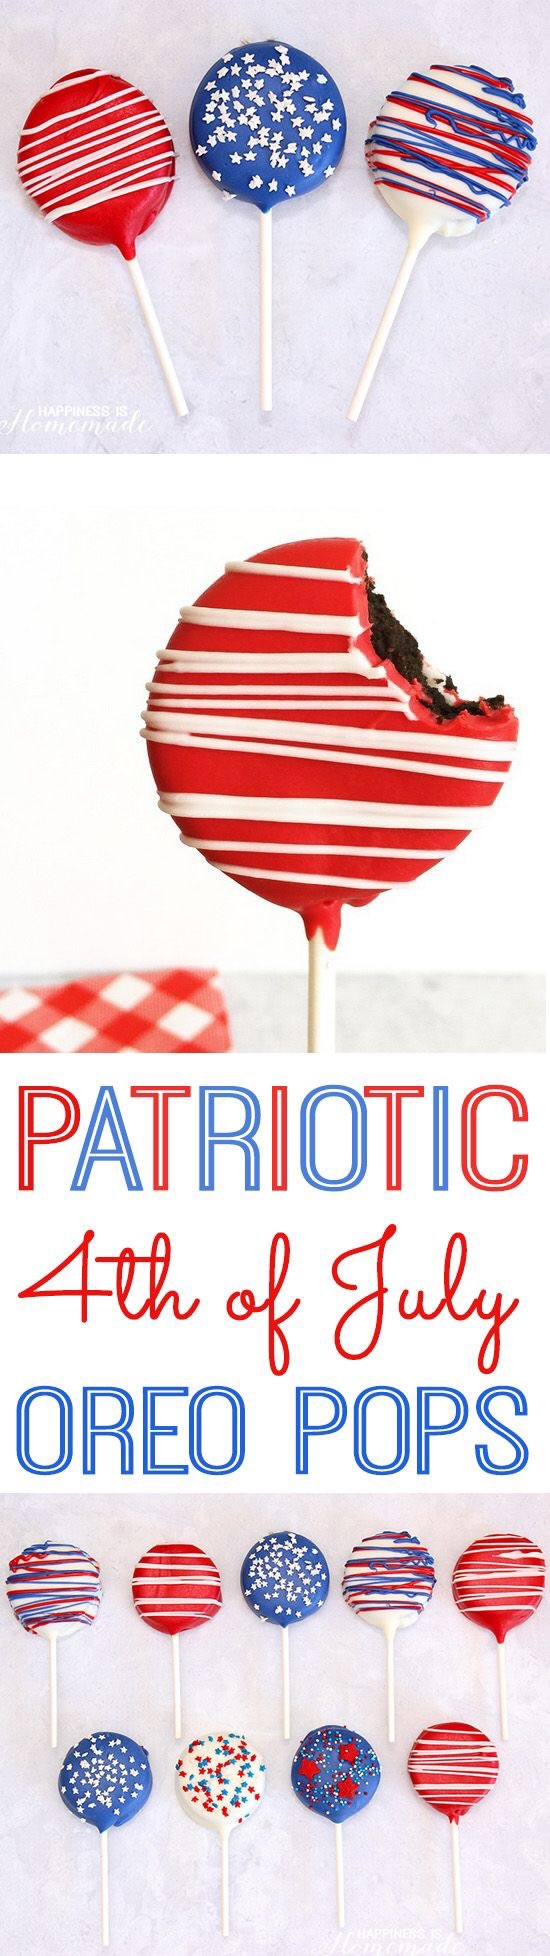 Oreo pops are always so fun and easy! Tutorial here:  http://www.happinessishomemade.net/2015/06/11/patriotic-oreo-pops-for-4th-of-july/